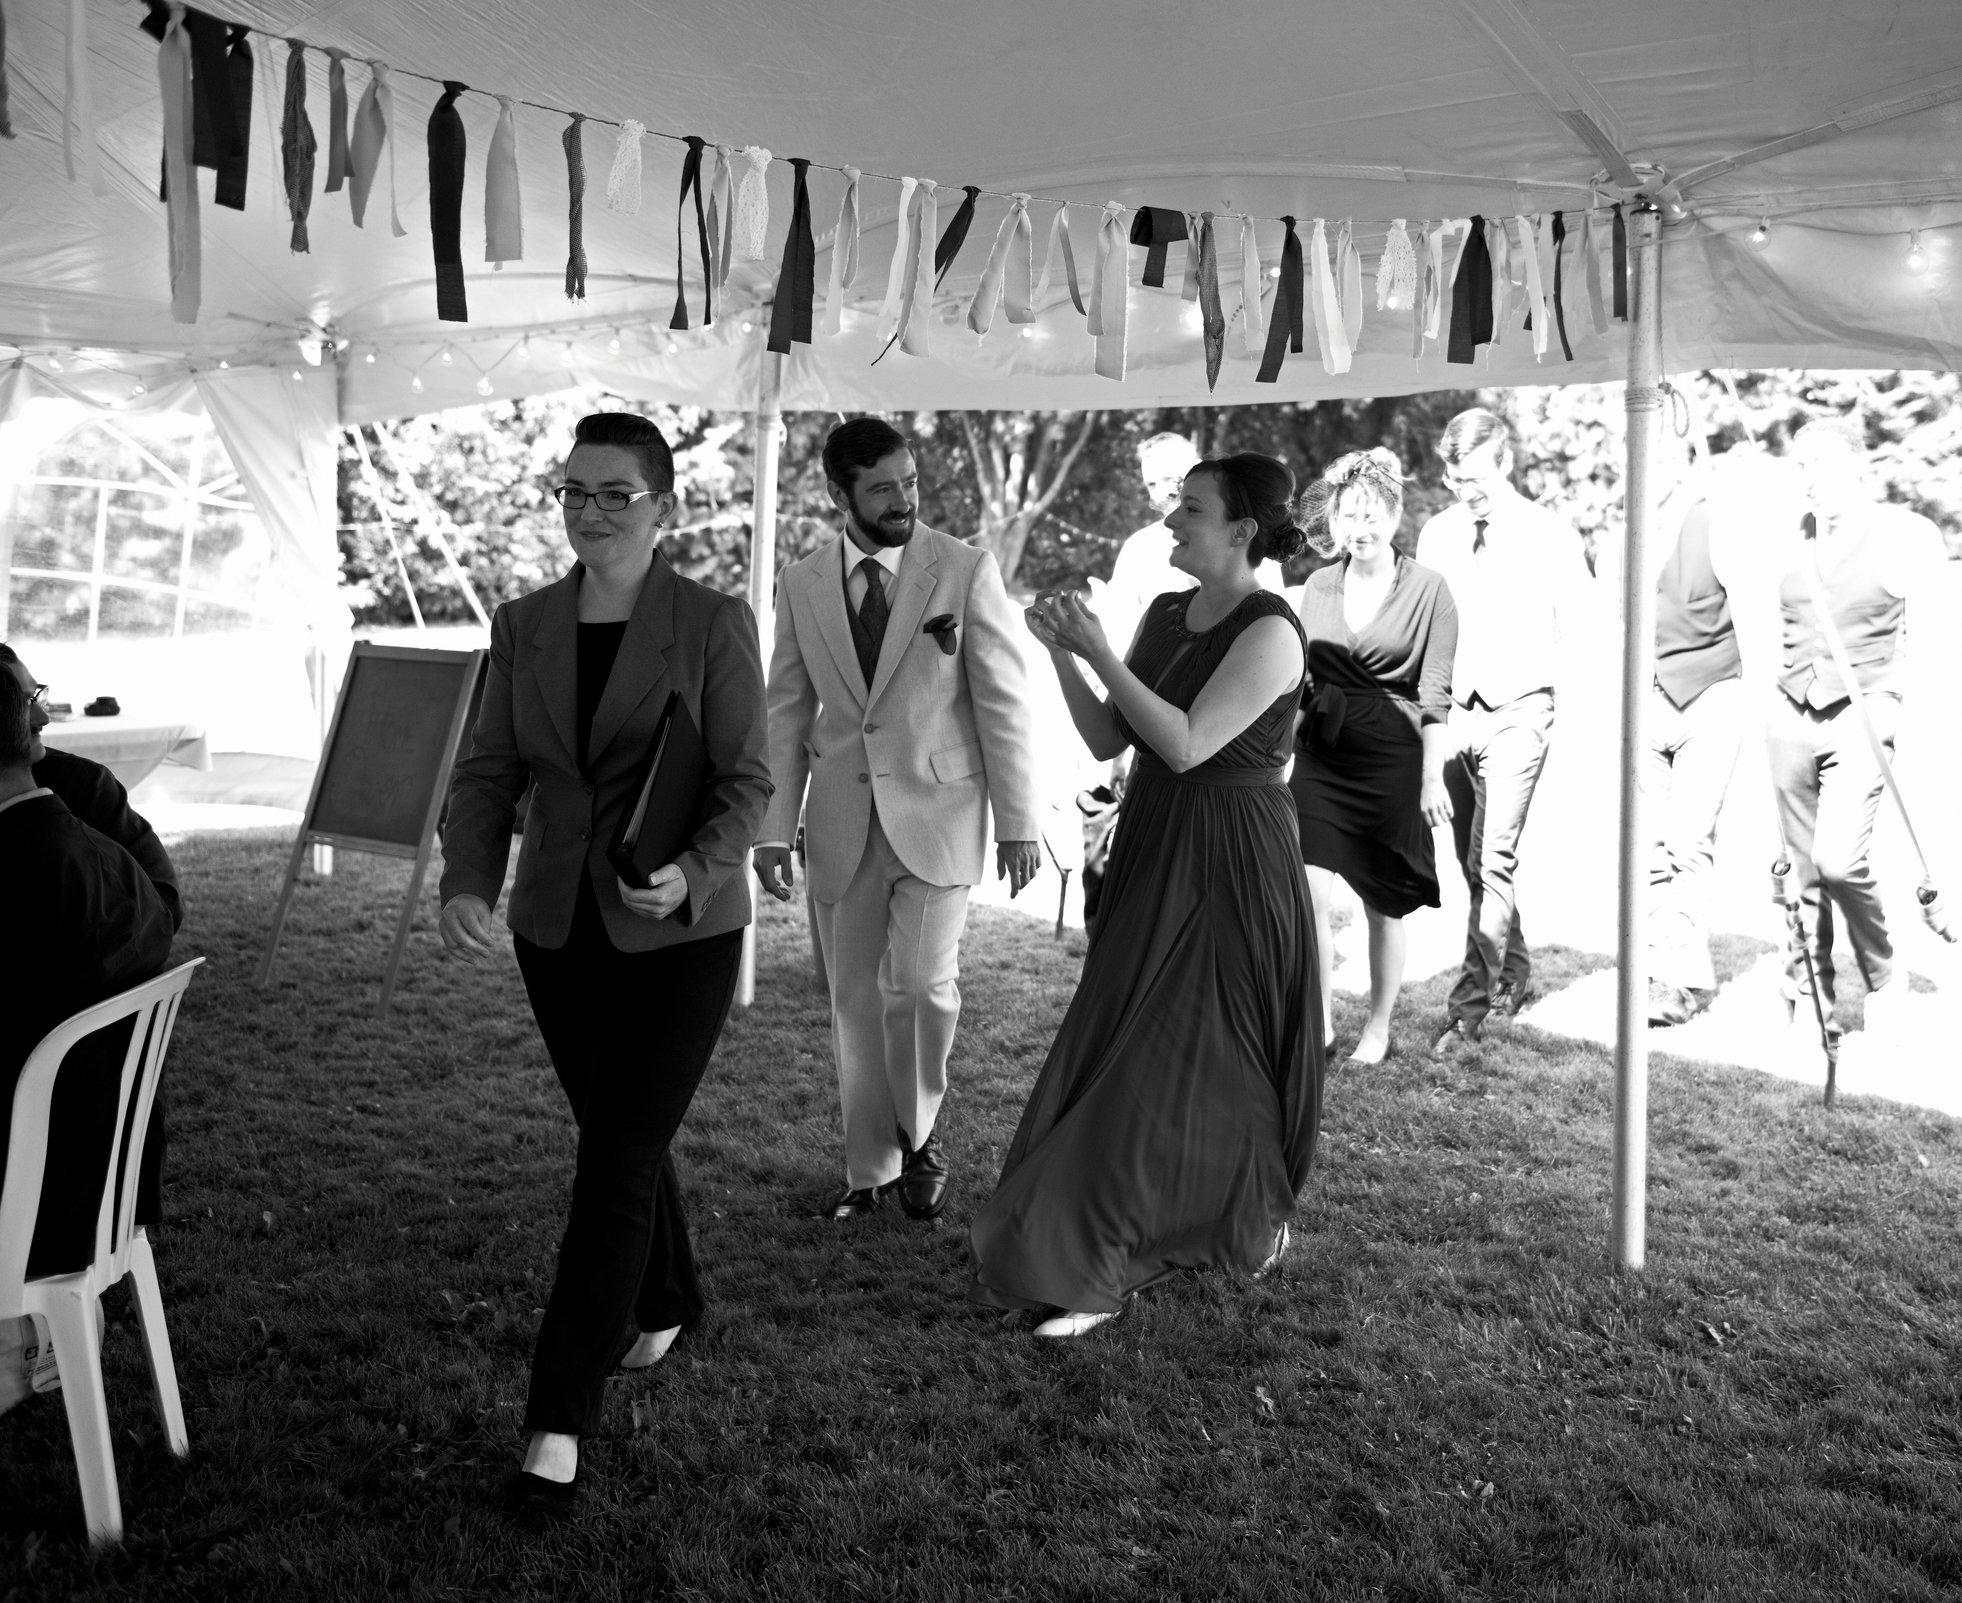 WEDDING-SEP-2-2017-65 (450).jpg